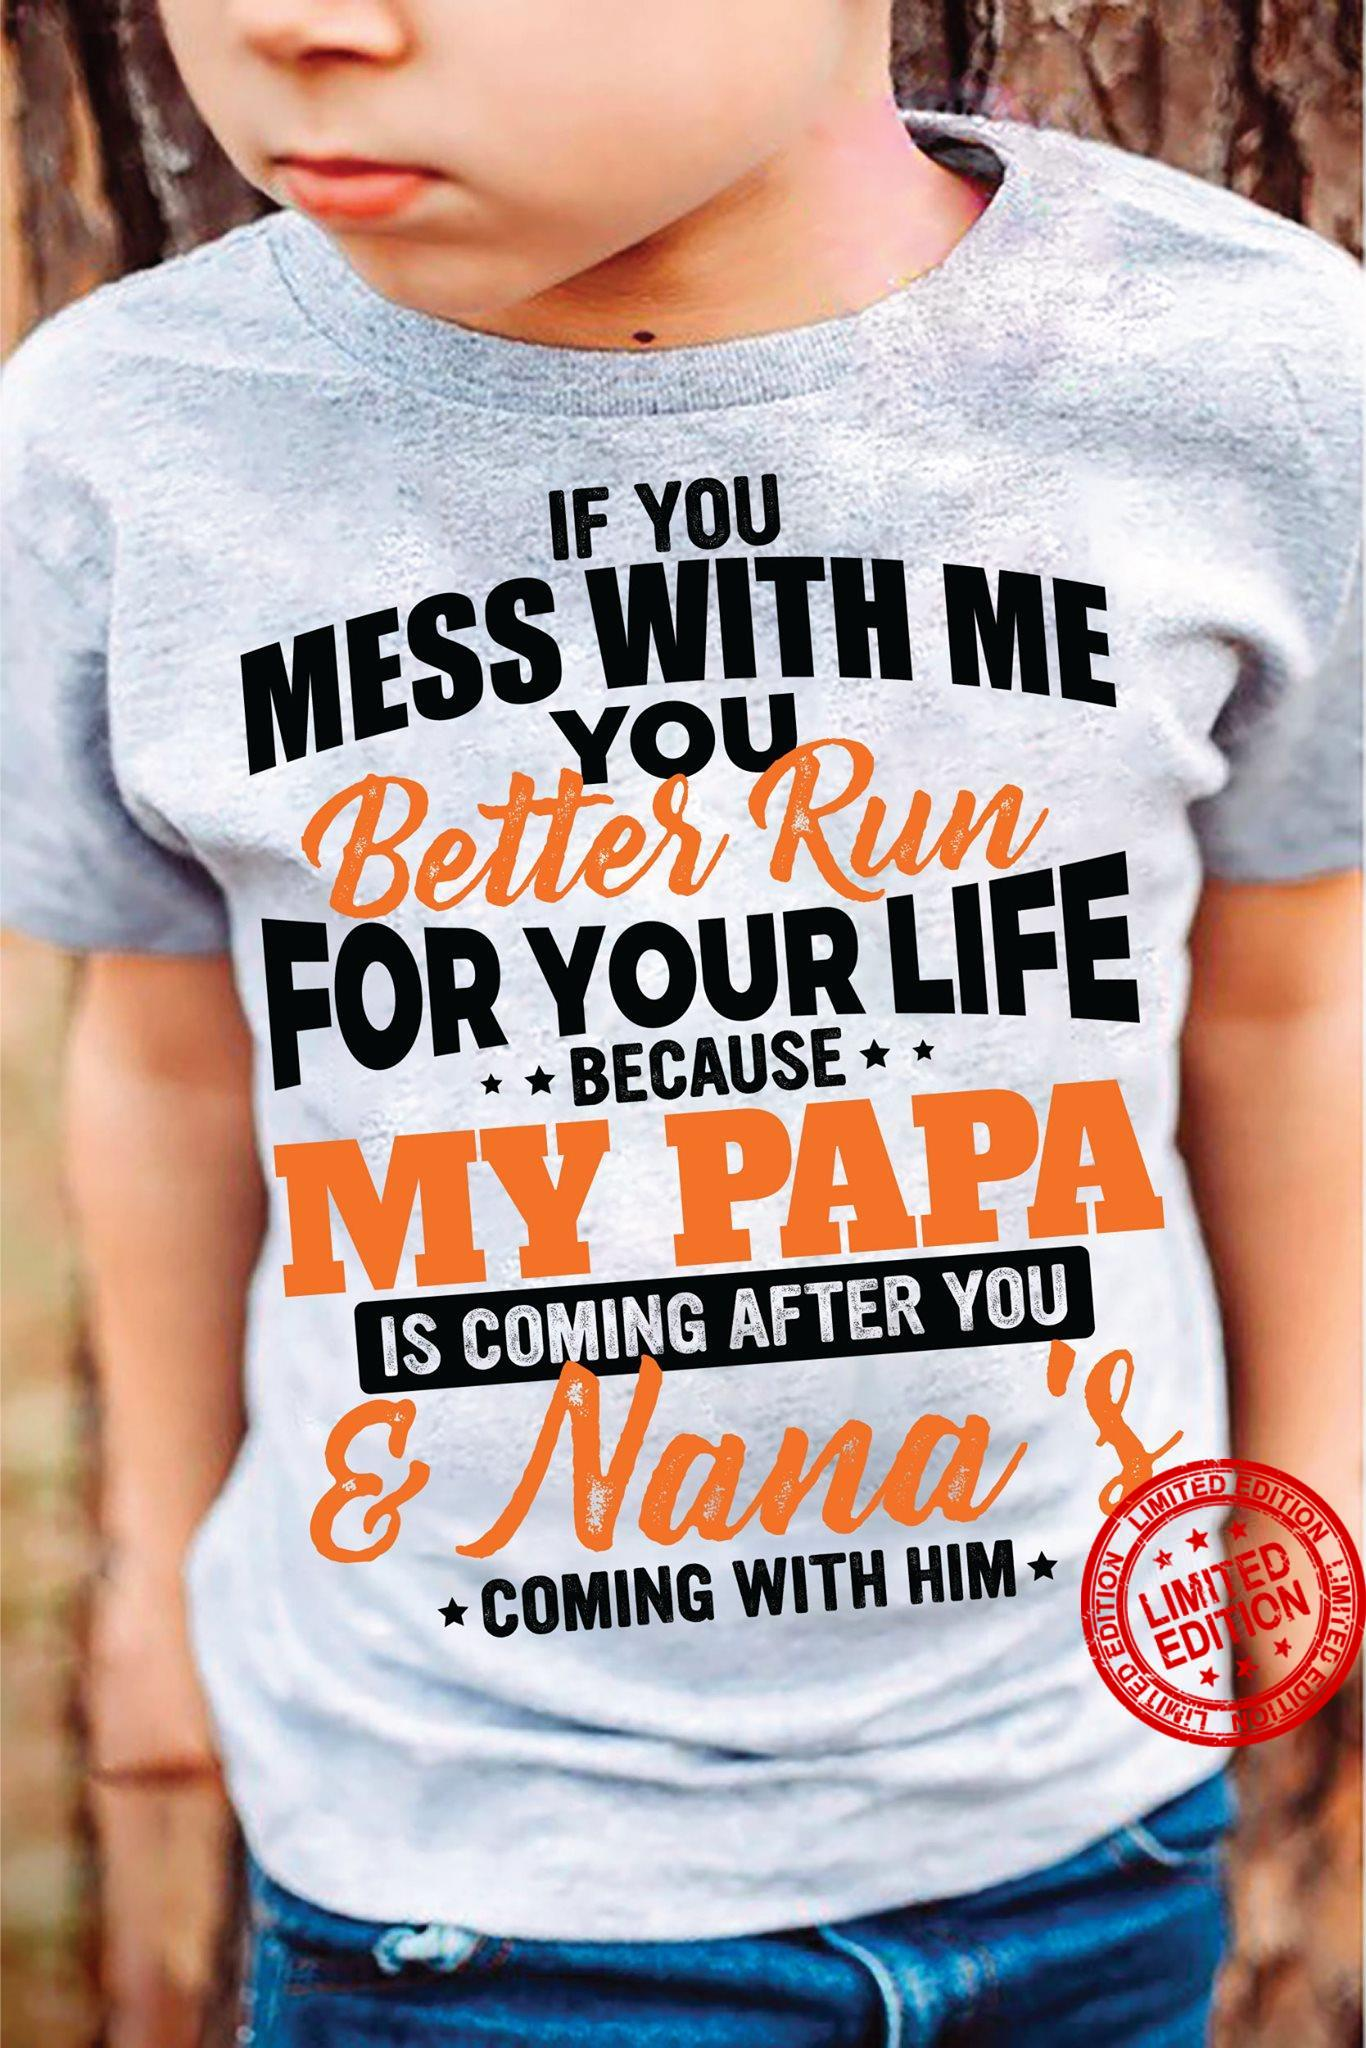 If You Mess With Me You Better Run For Your Life Because My Papa Is Coming After You Nana Coming With Him Shirt